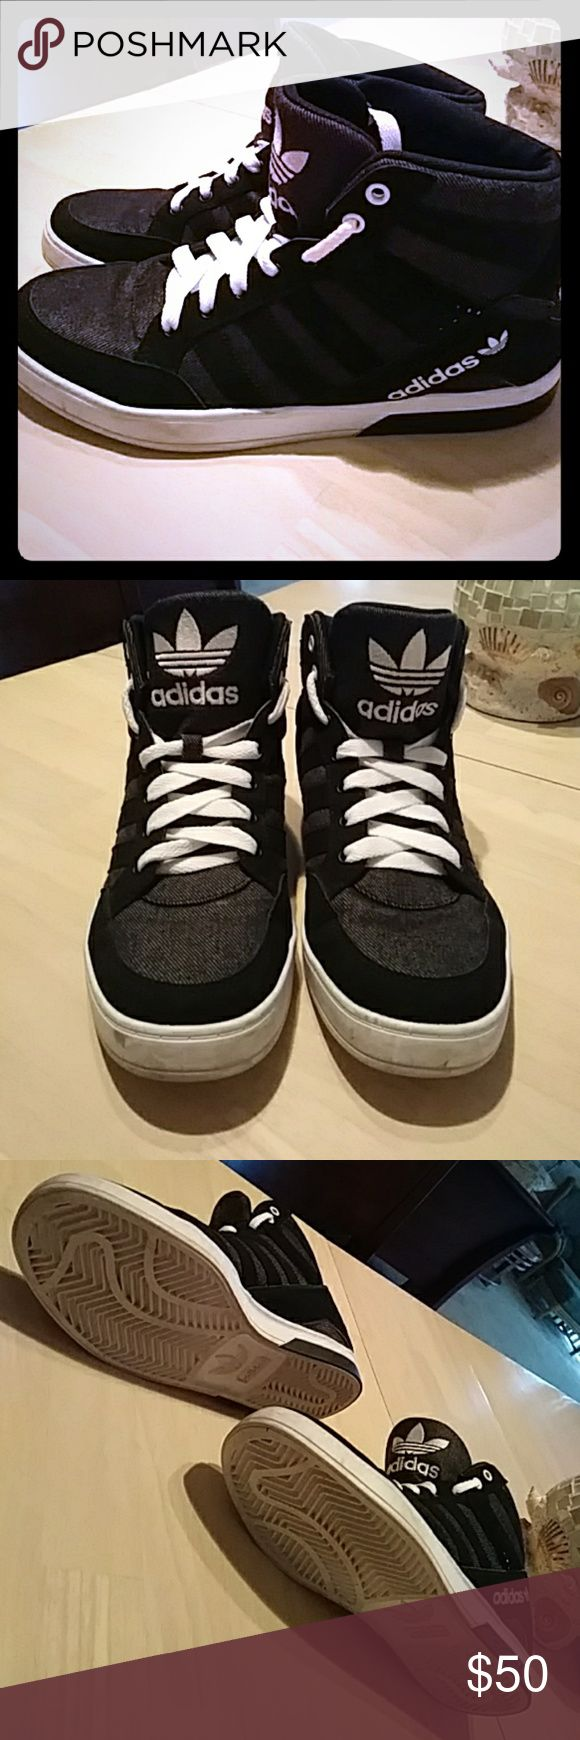 Adidas high top sneakers BLACK, WHITE, CHARCOAL GREY Fairly new. Used to dance in at least 10 times mainly on stage and in a dance studio. Adidas Shoes Athletic Shoes